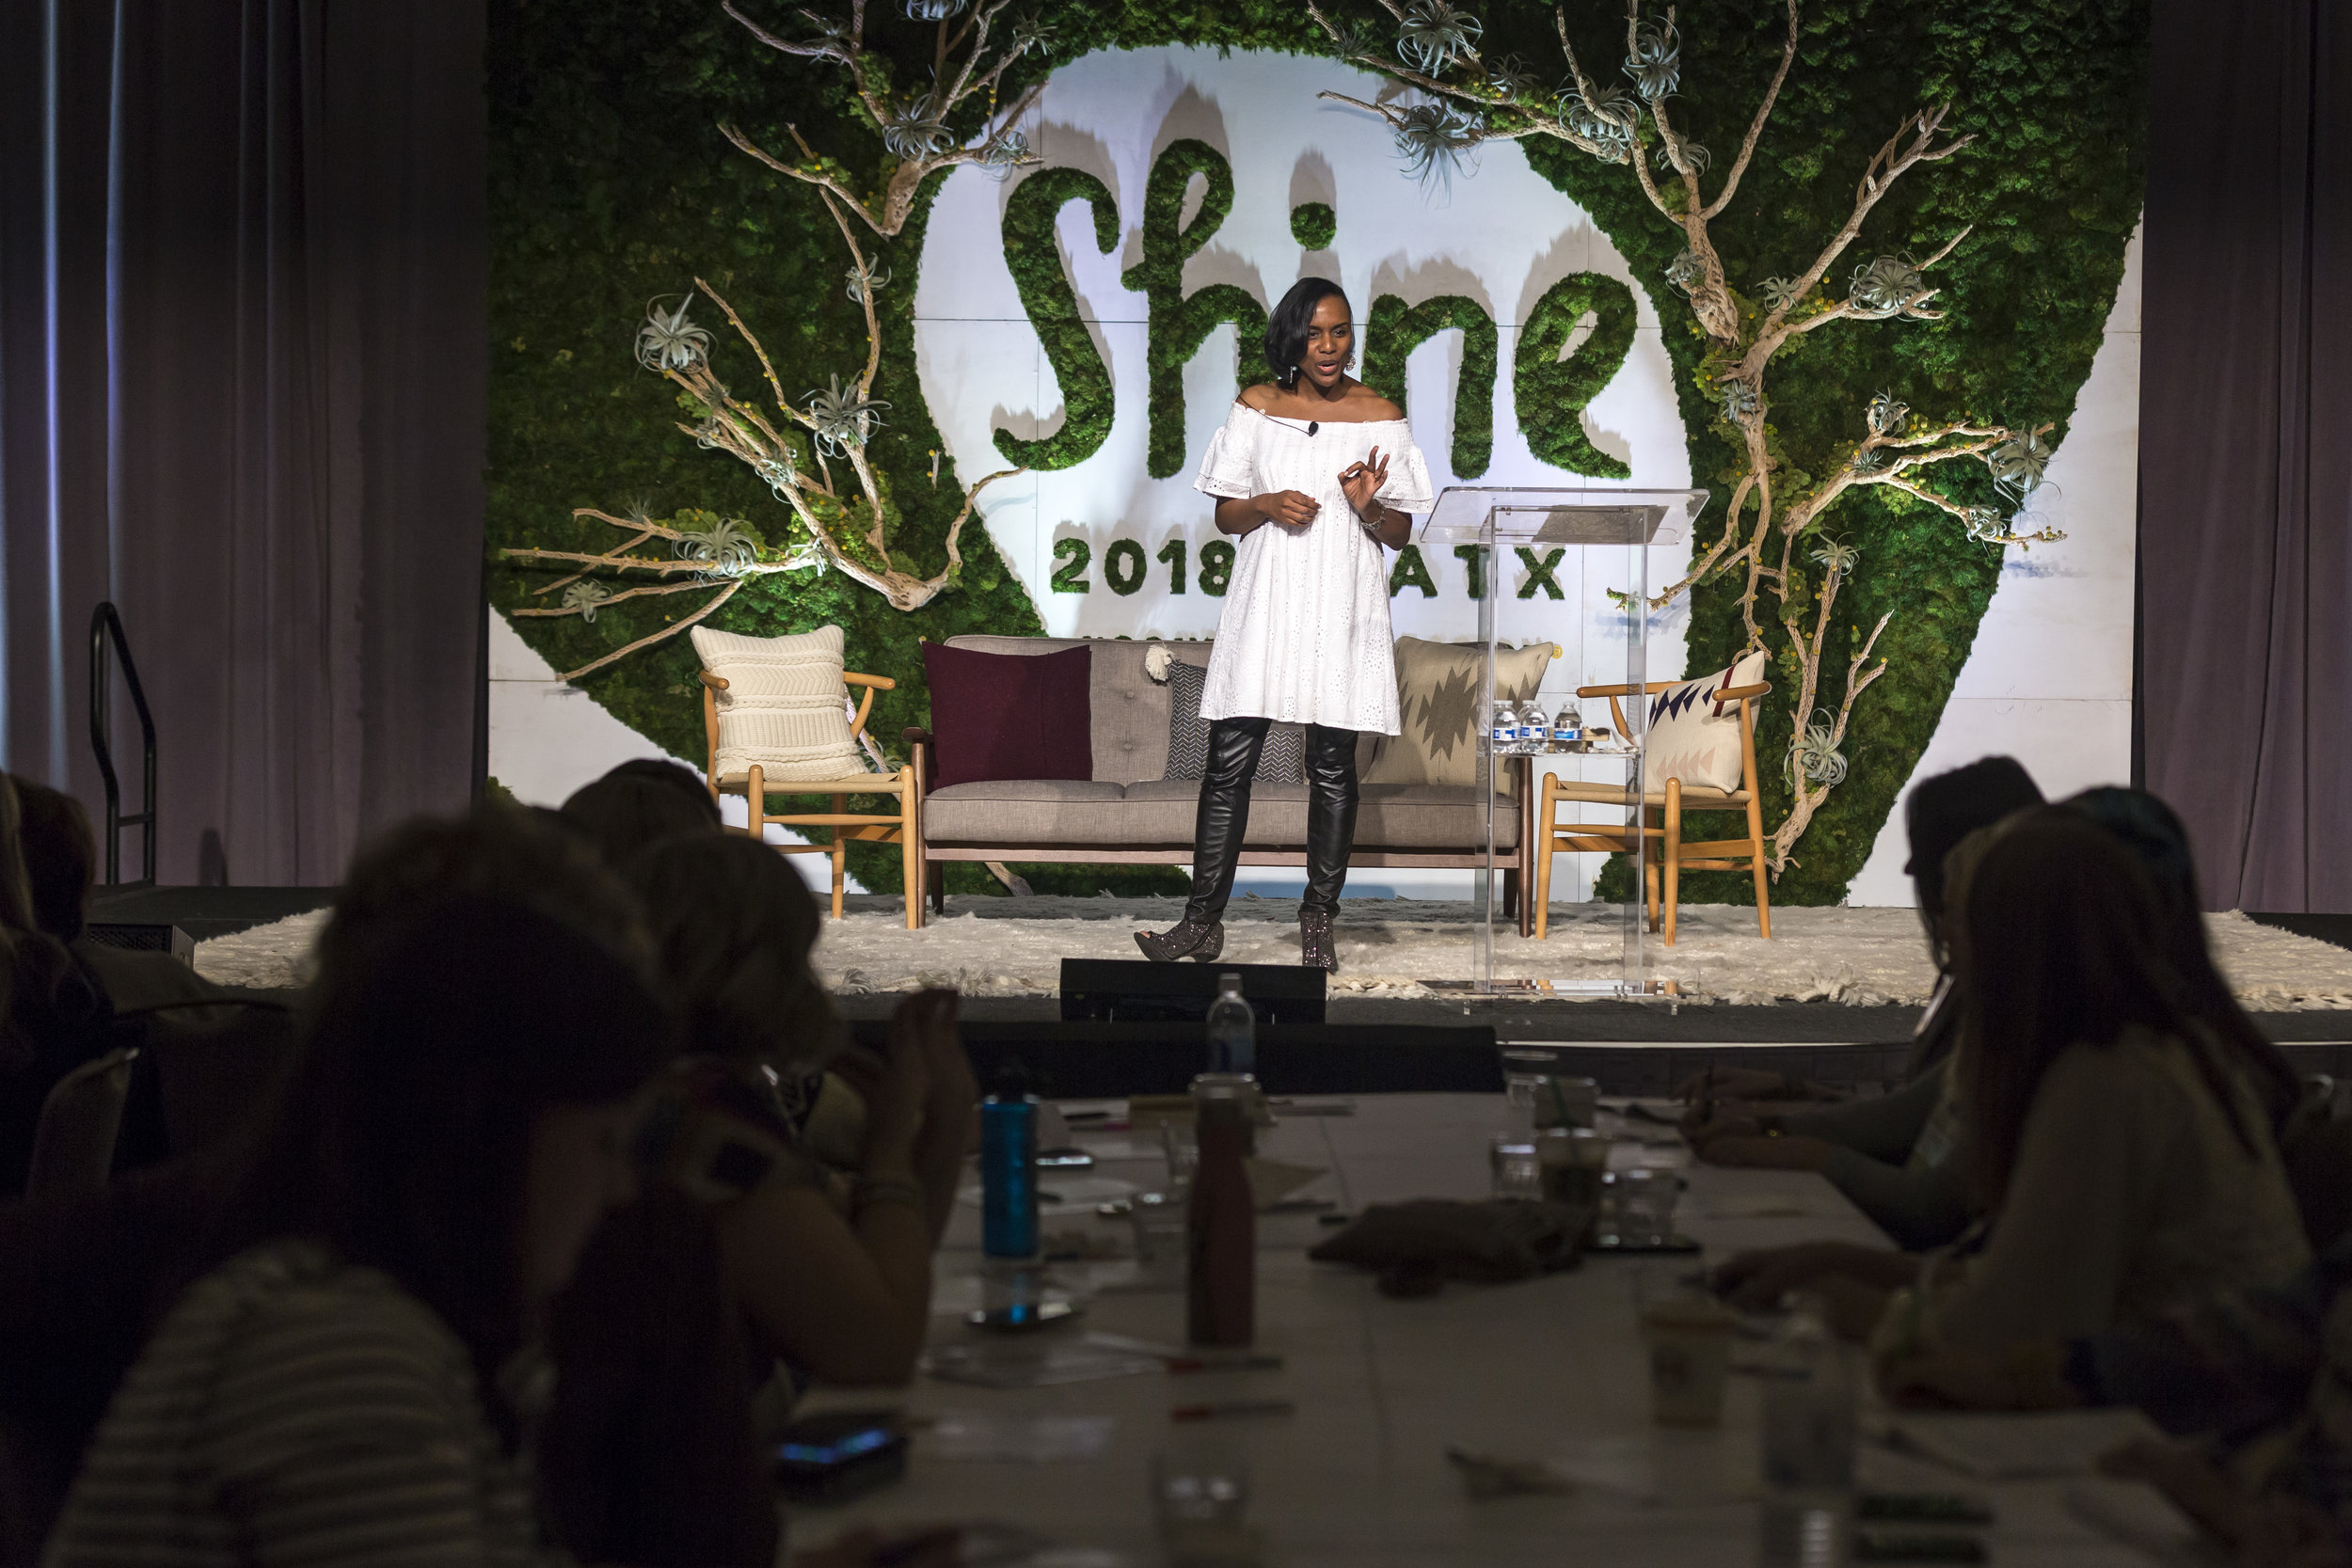 SHINE Conference... 400+ Leaders in Austin, TX